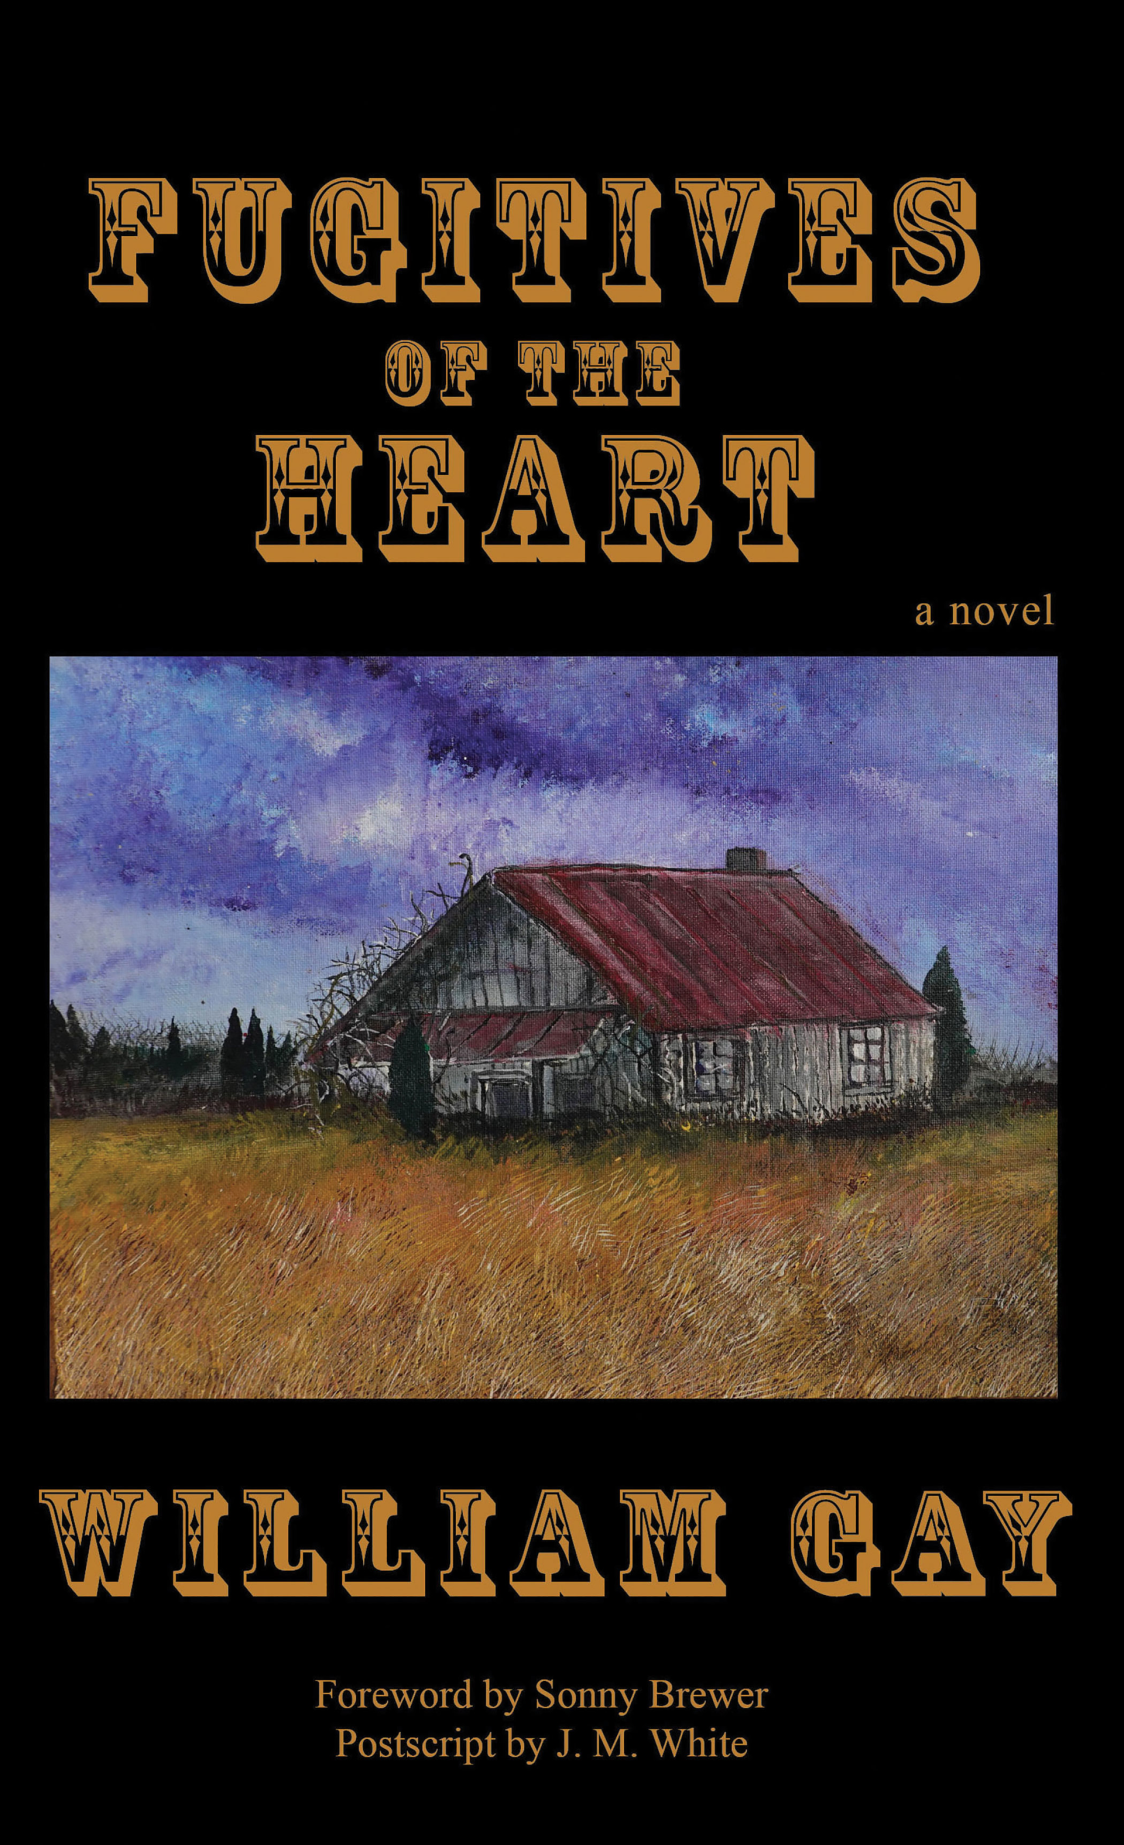 William Gay's <i>Fugitives of the Heart</i> Is an Homage to Twain